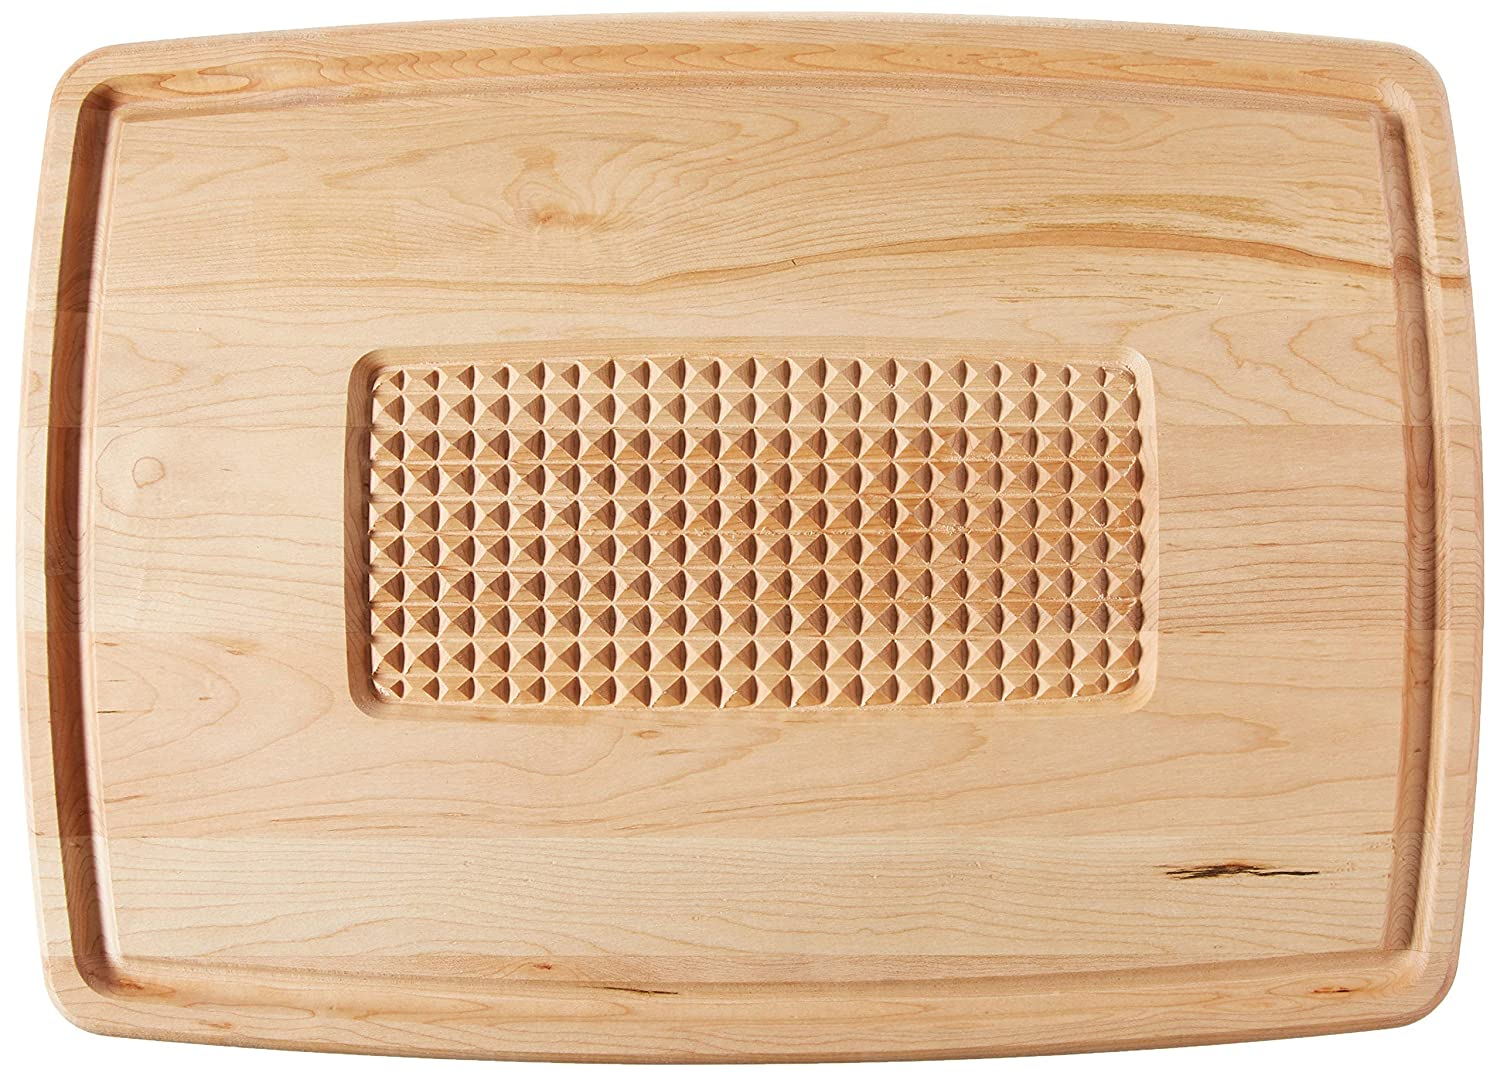 Snow River USA 7V03504 Hardwood Maple Pyramid Cutting Carving Board with Juice Groove 15 x 21 x .75